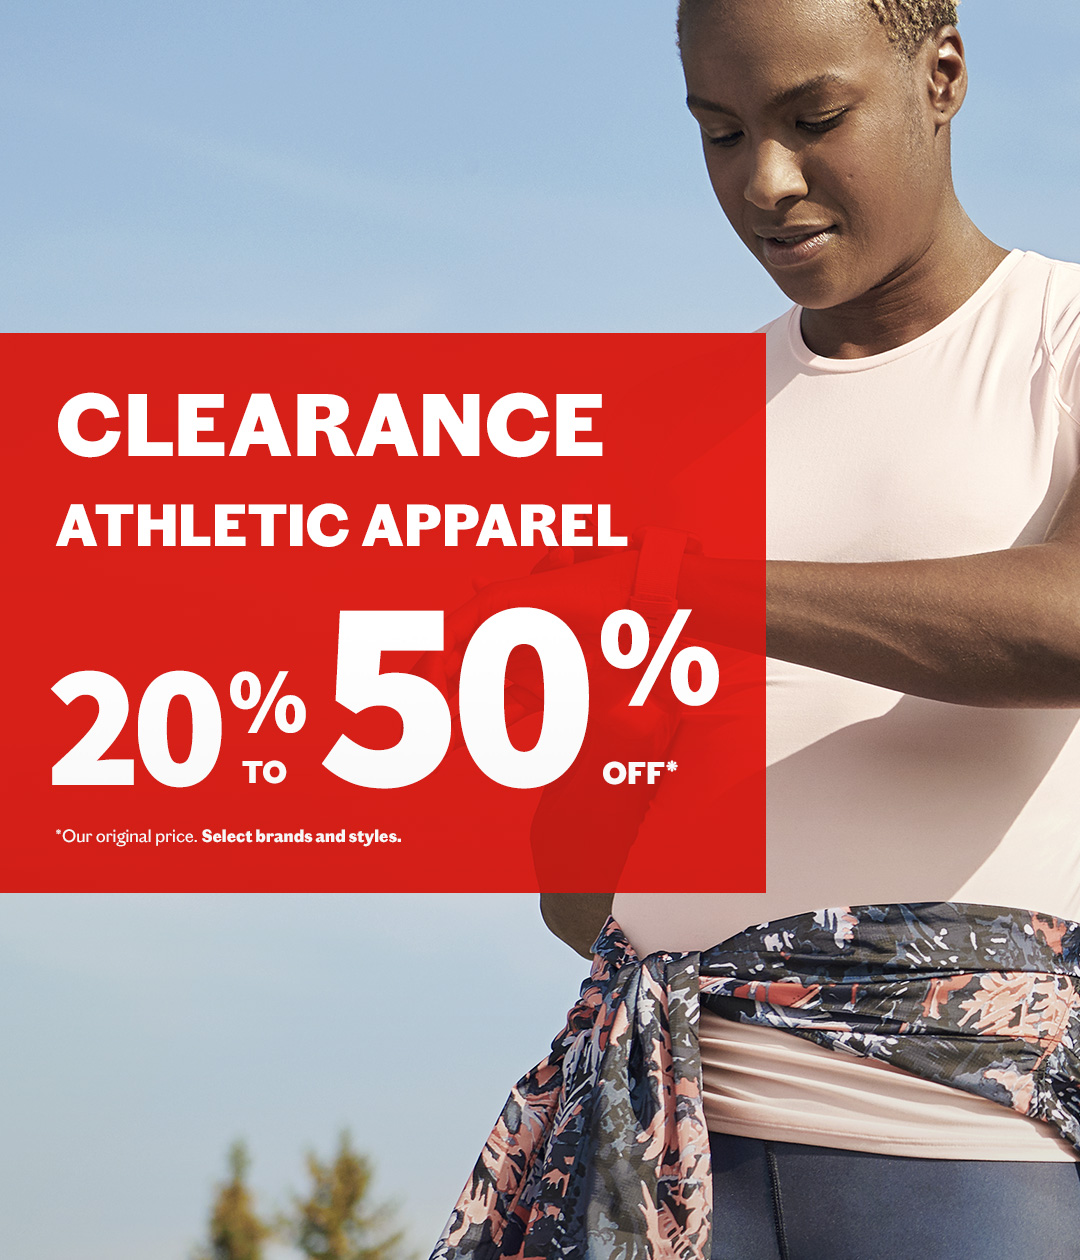 Clearance​ - Athletic apparel​